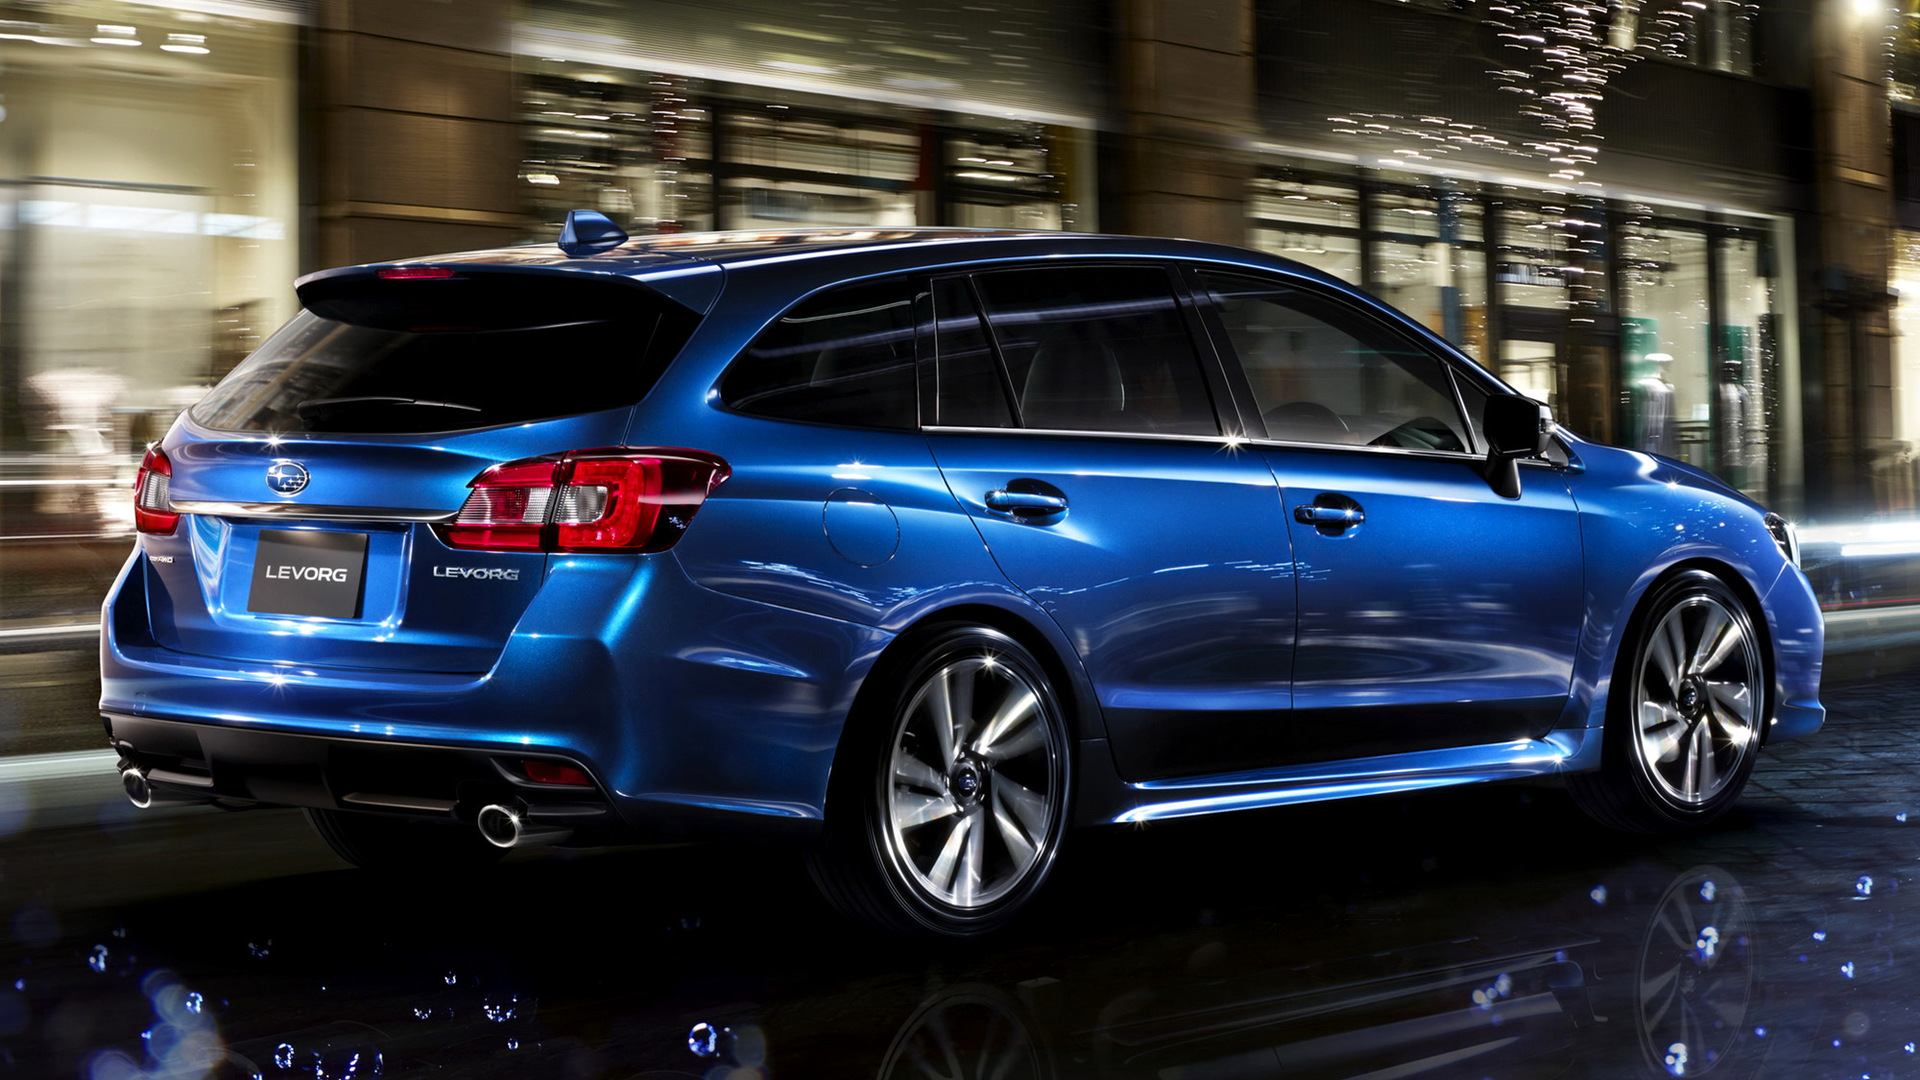 Subaru Levorg (2013) Wallpapers and HD Images - Car Pixel